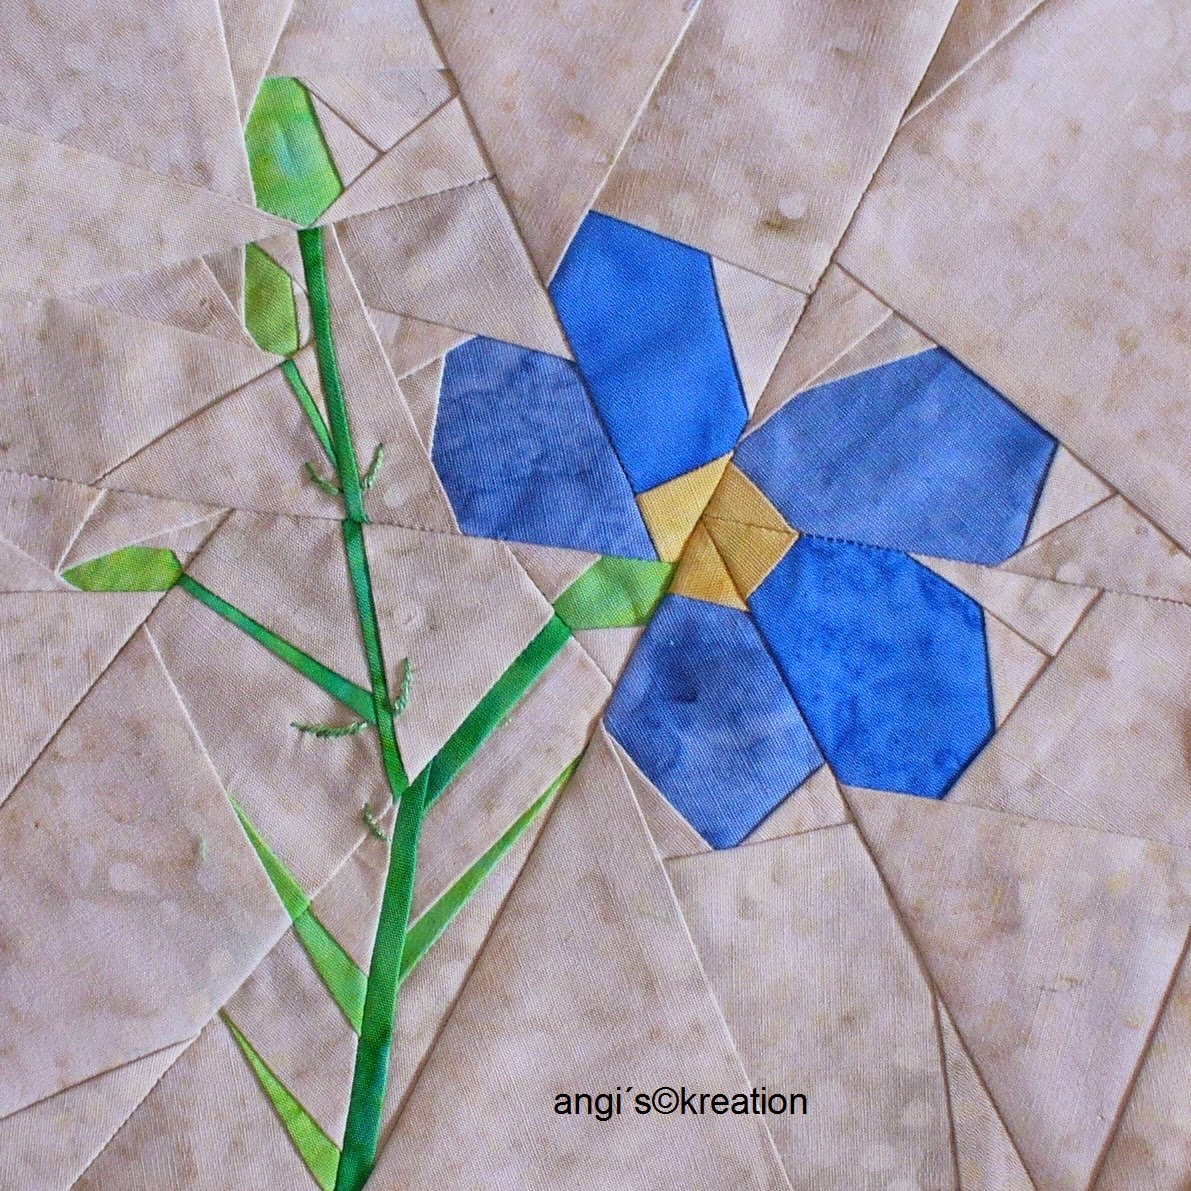 1000+ images about quilt blocks - paperpieced on Pinterest Paper piecing, Quilt blocks and ...